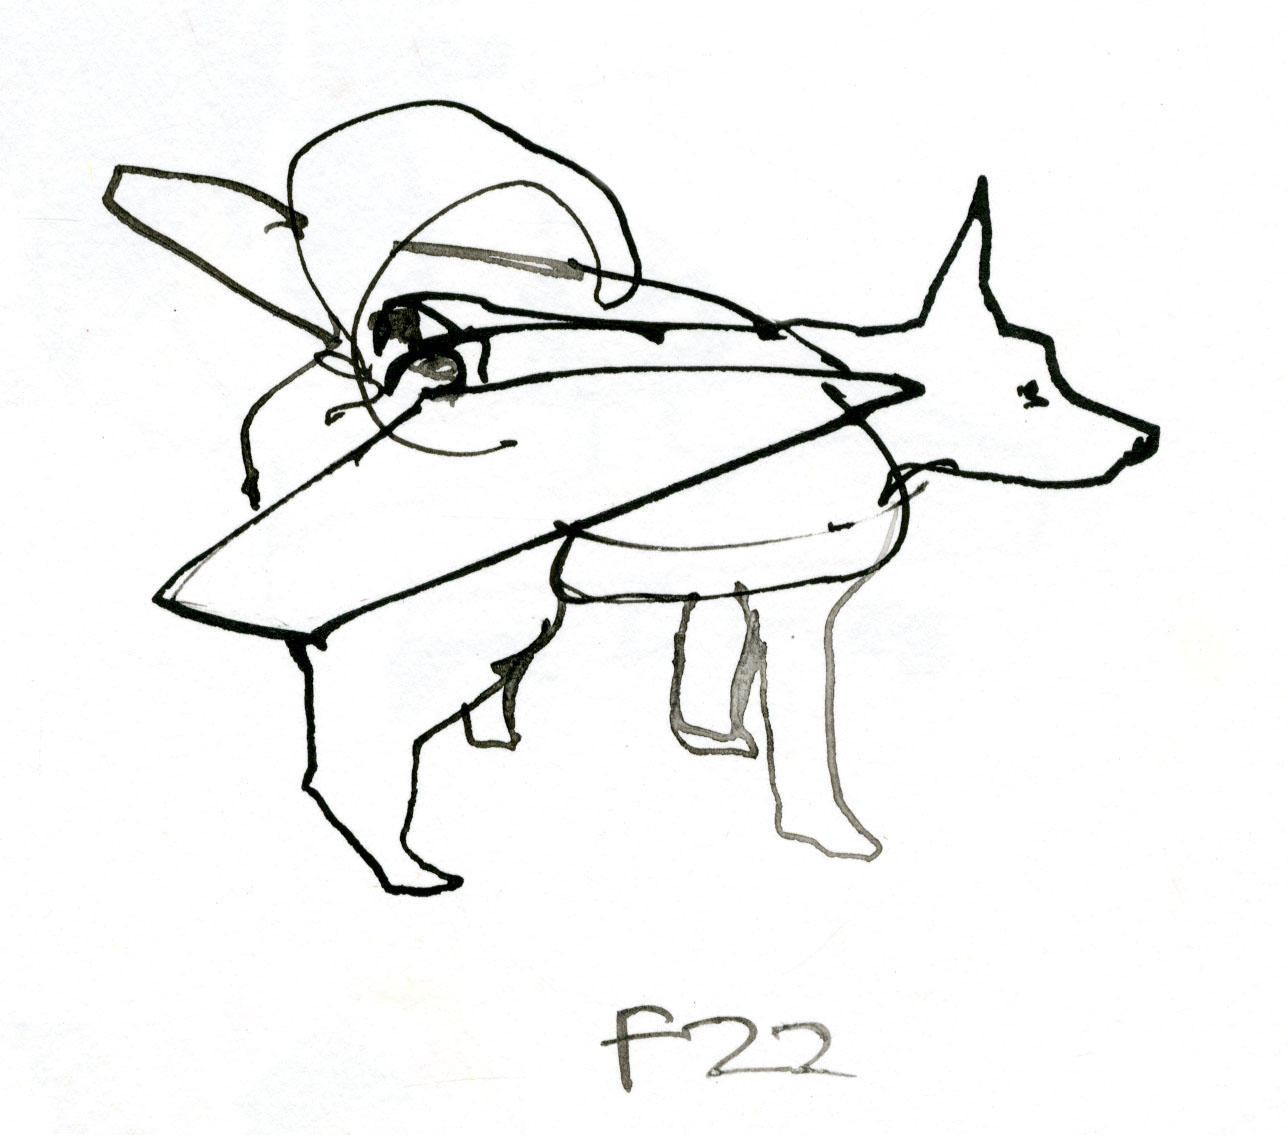 F22 Bomber dog © Carly Larsson 2014